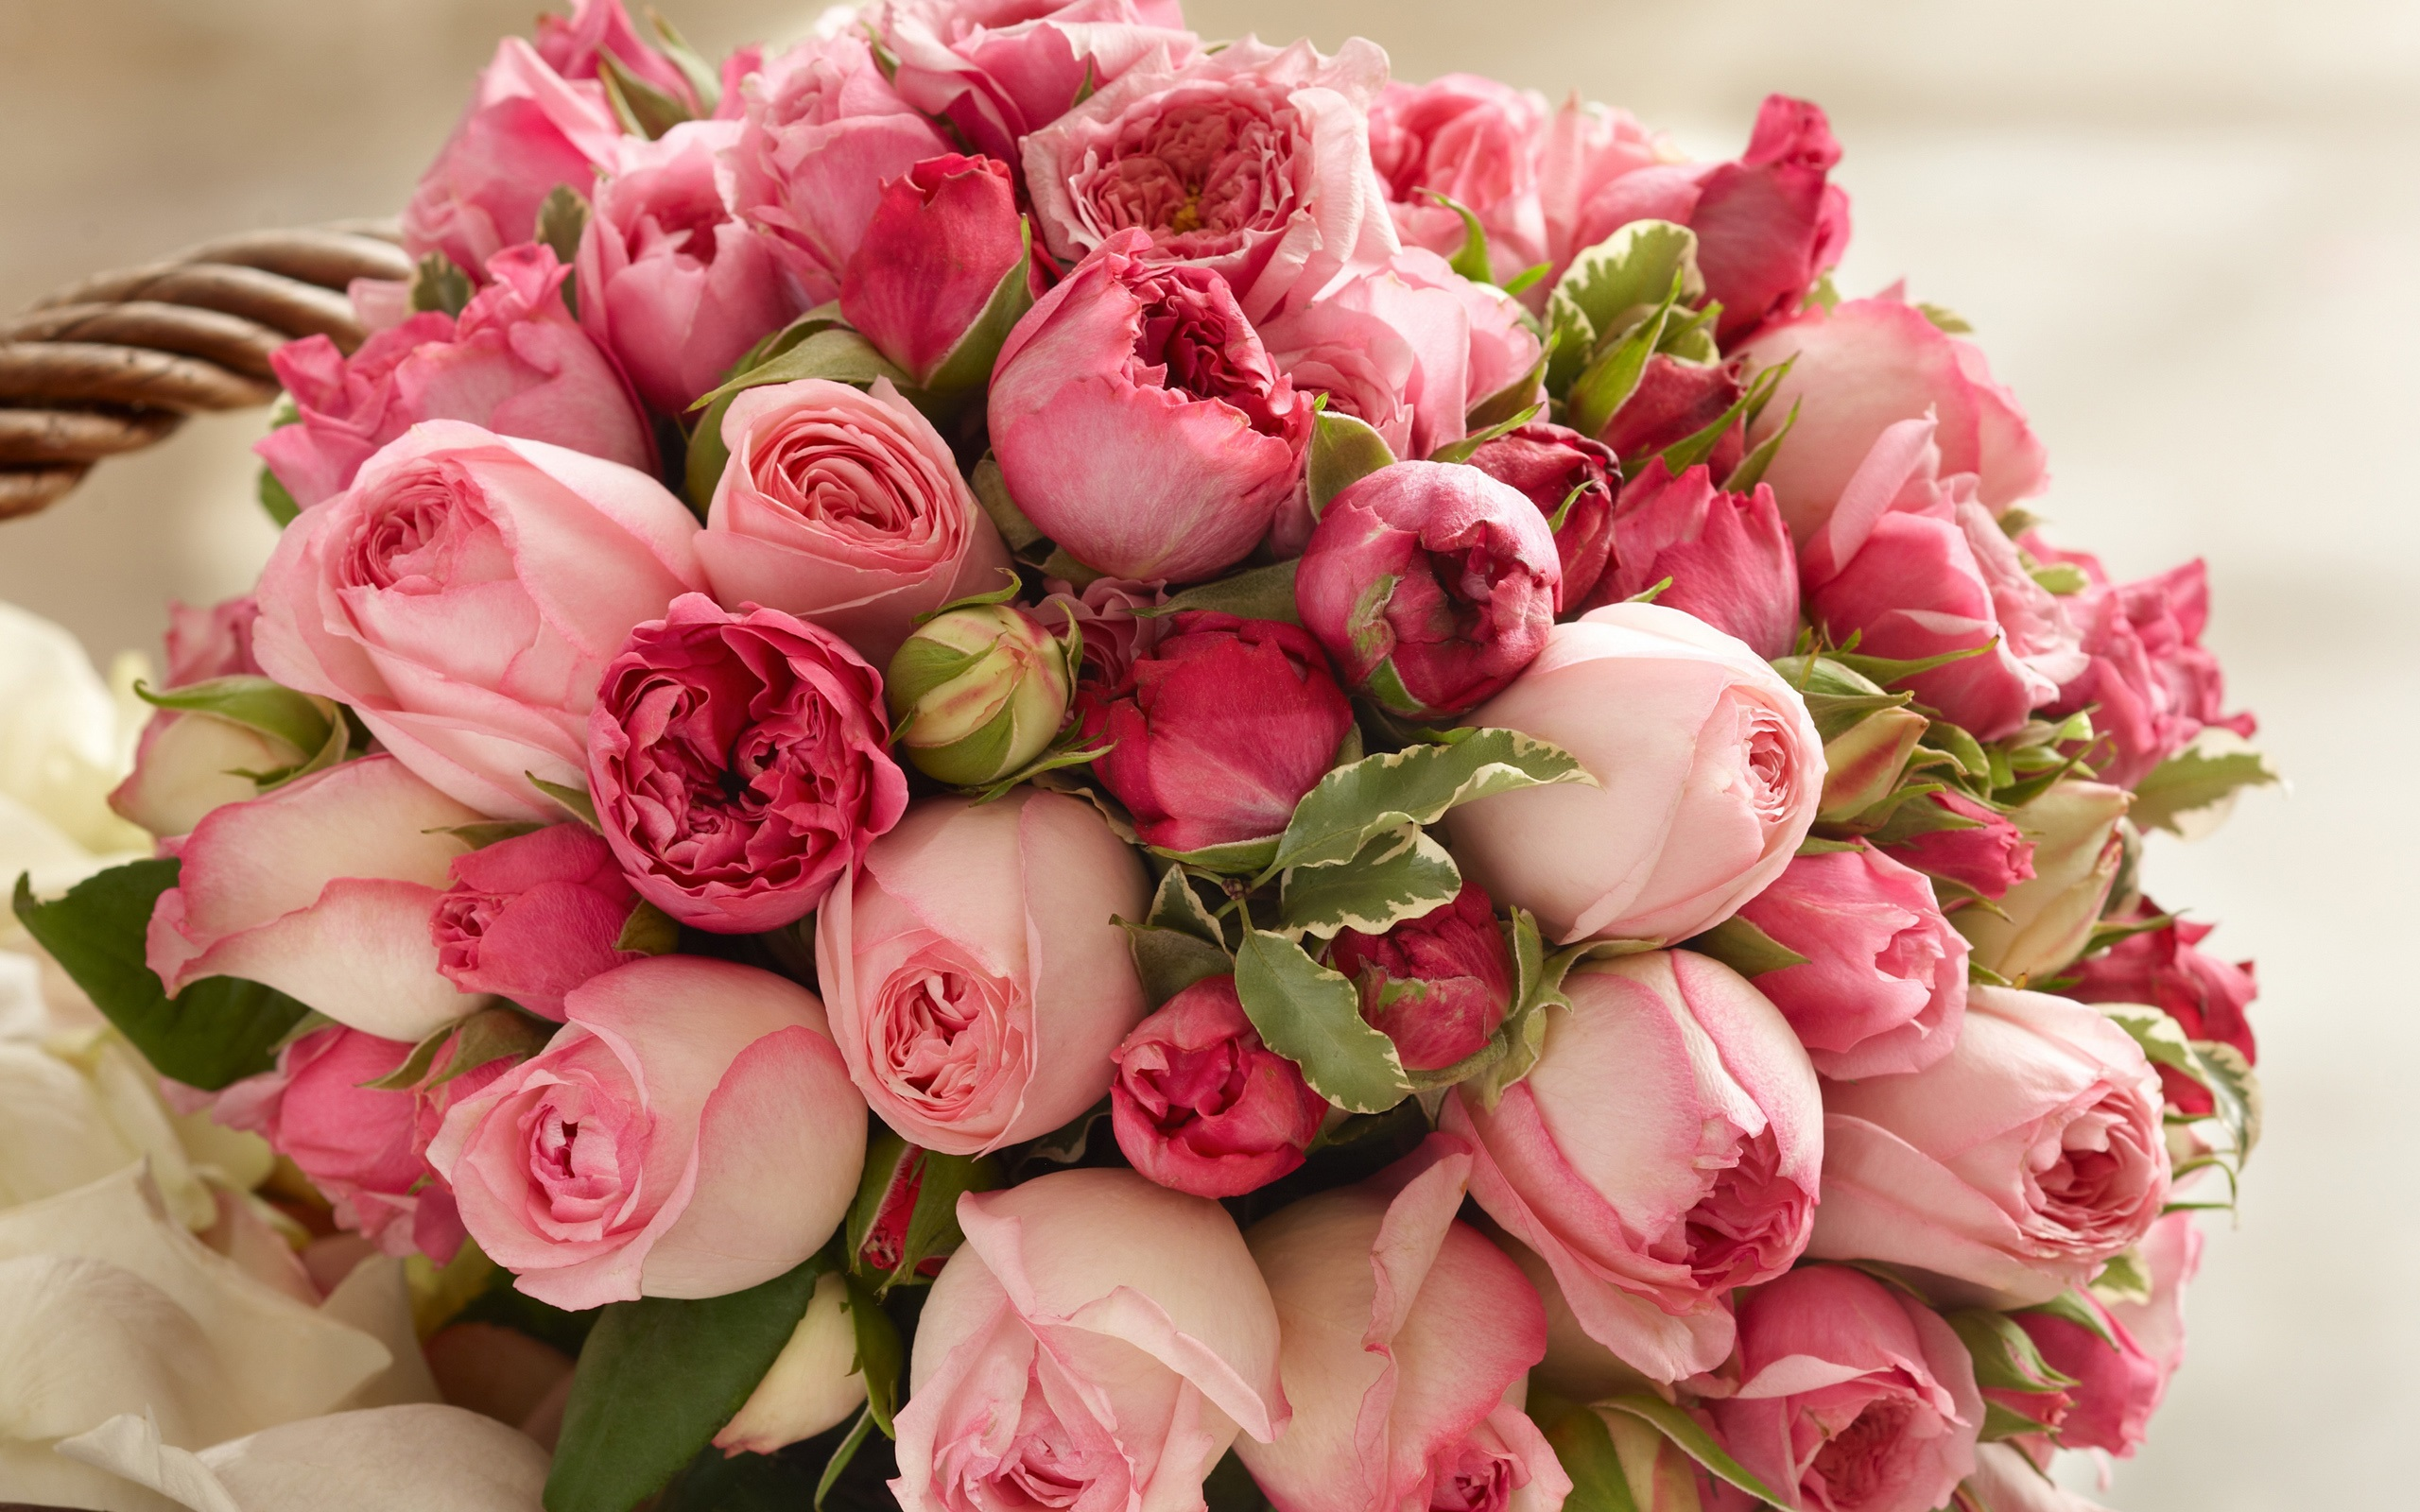 Free photo: Beautiful Flower bouquet - Rose, White, Pink - Free ...